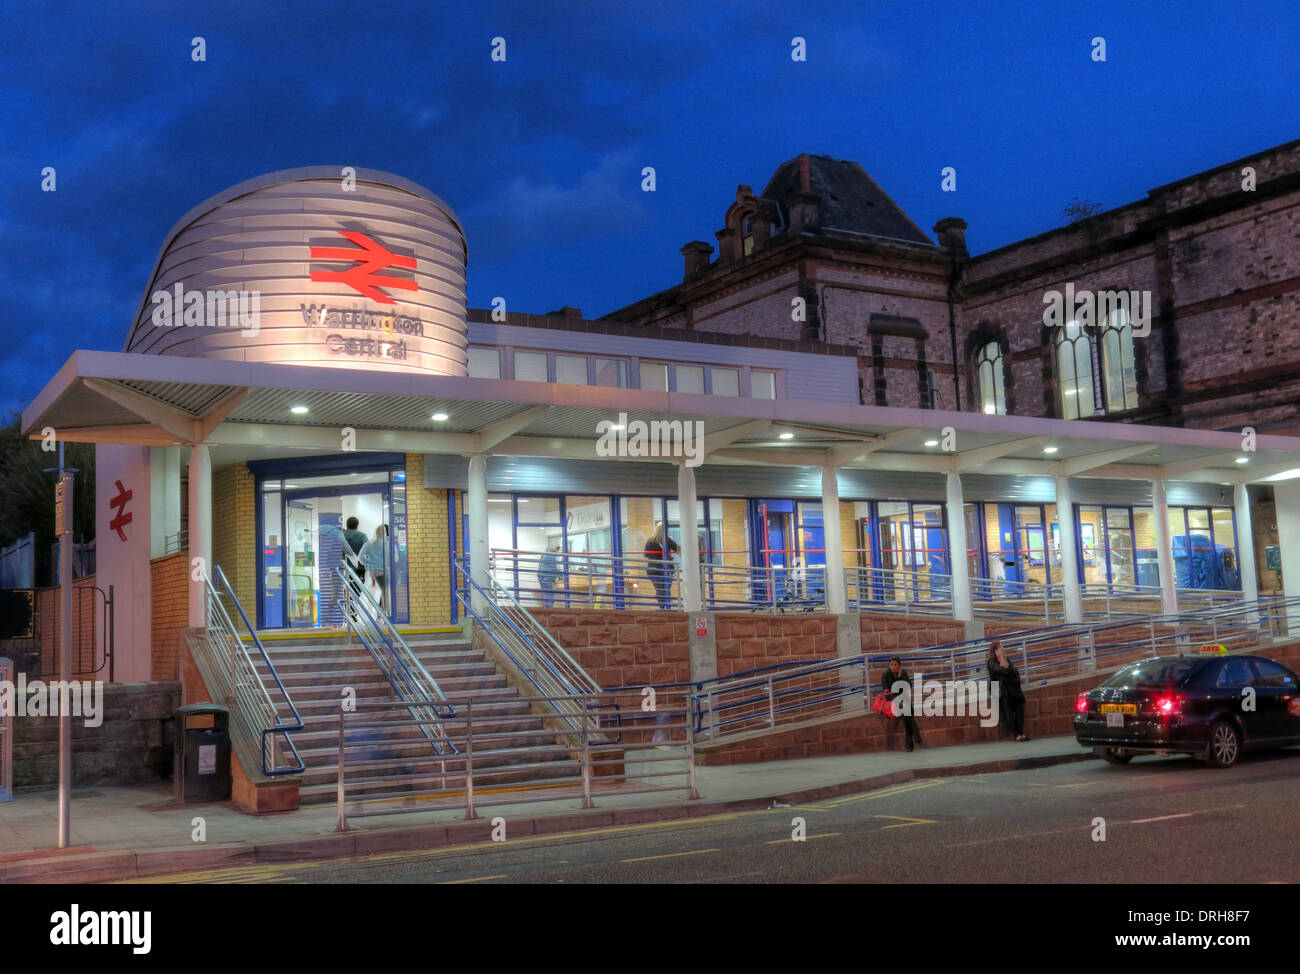 Warrington Central station at dusk, Cheshire, England, UK - Stock Image